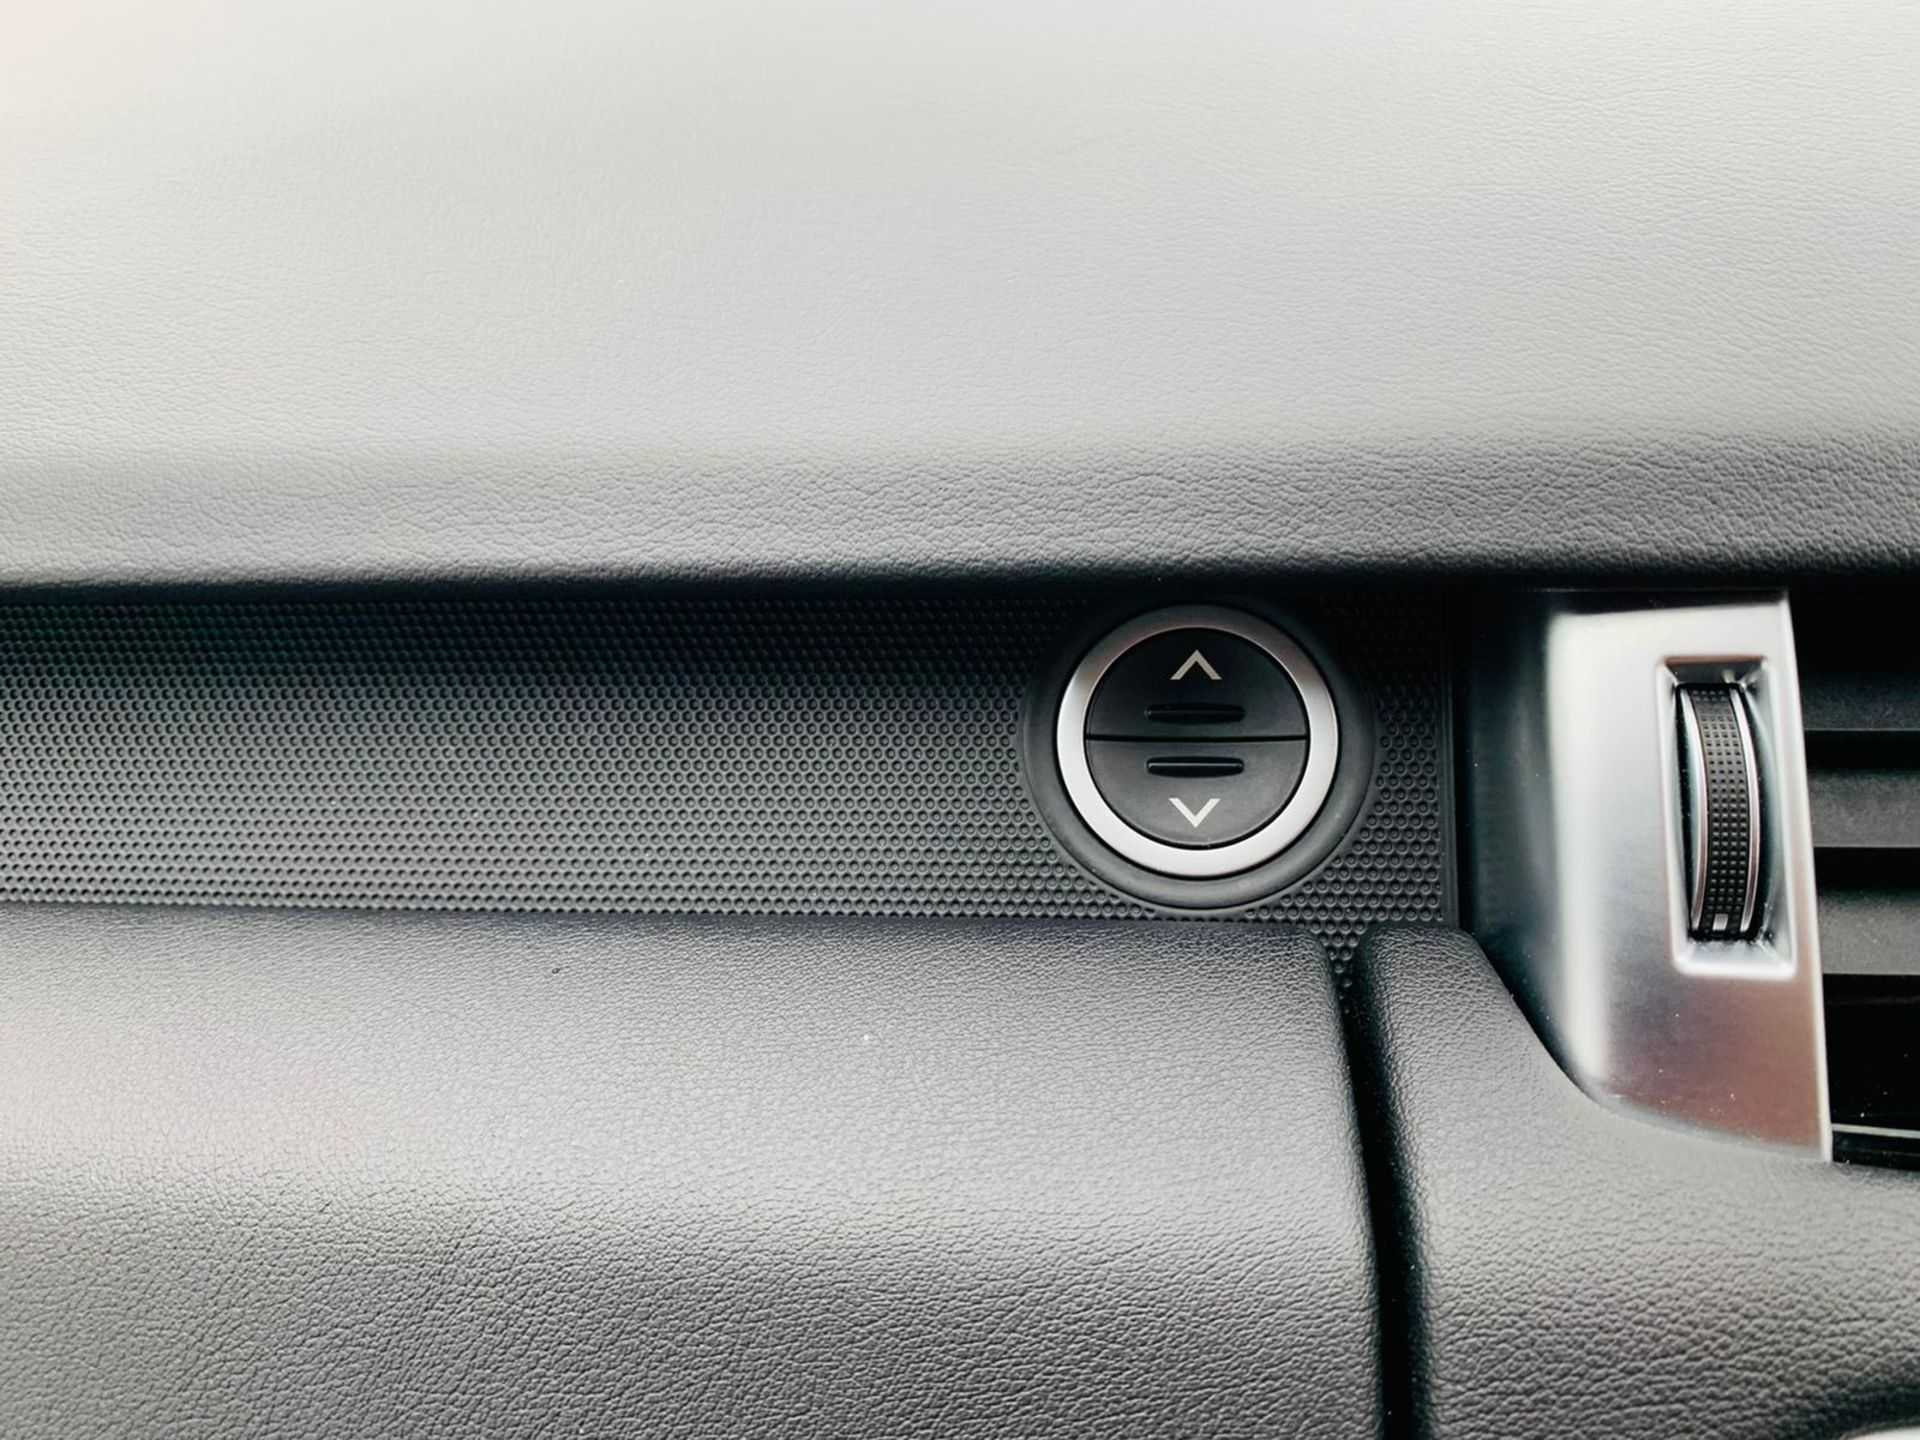 (RESERVE MET) Range Rover Sport 3.0 SDV6 HSE Auto - 2019 - 1 Keeper From New - Virtual Cockpit - - Image 29 of 42